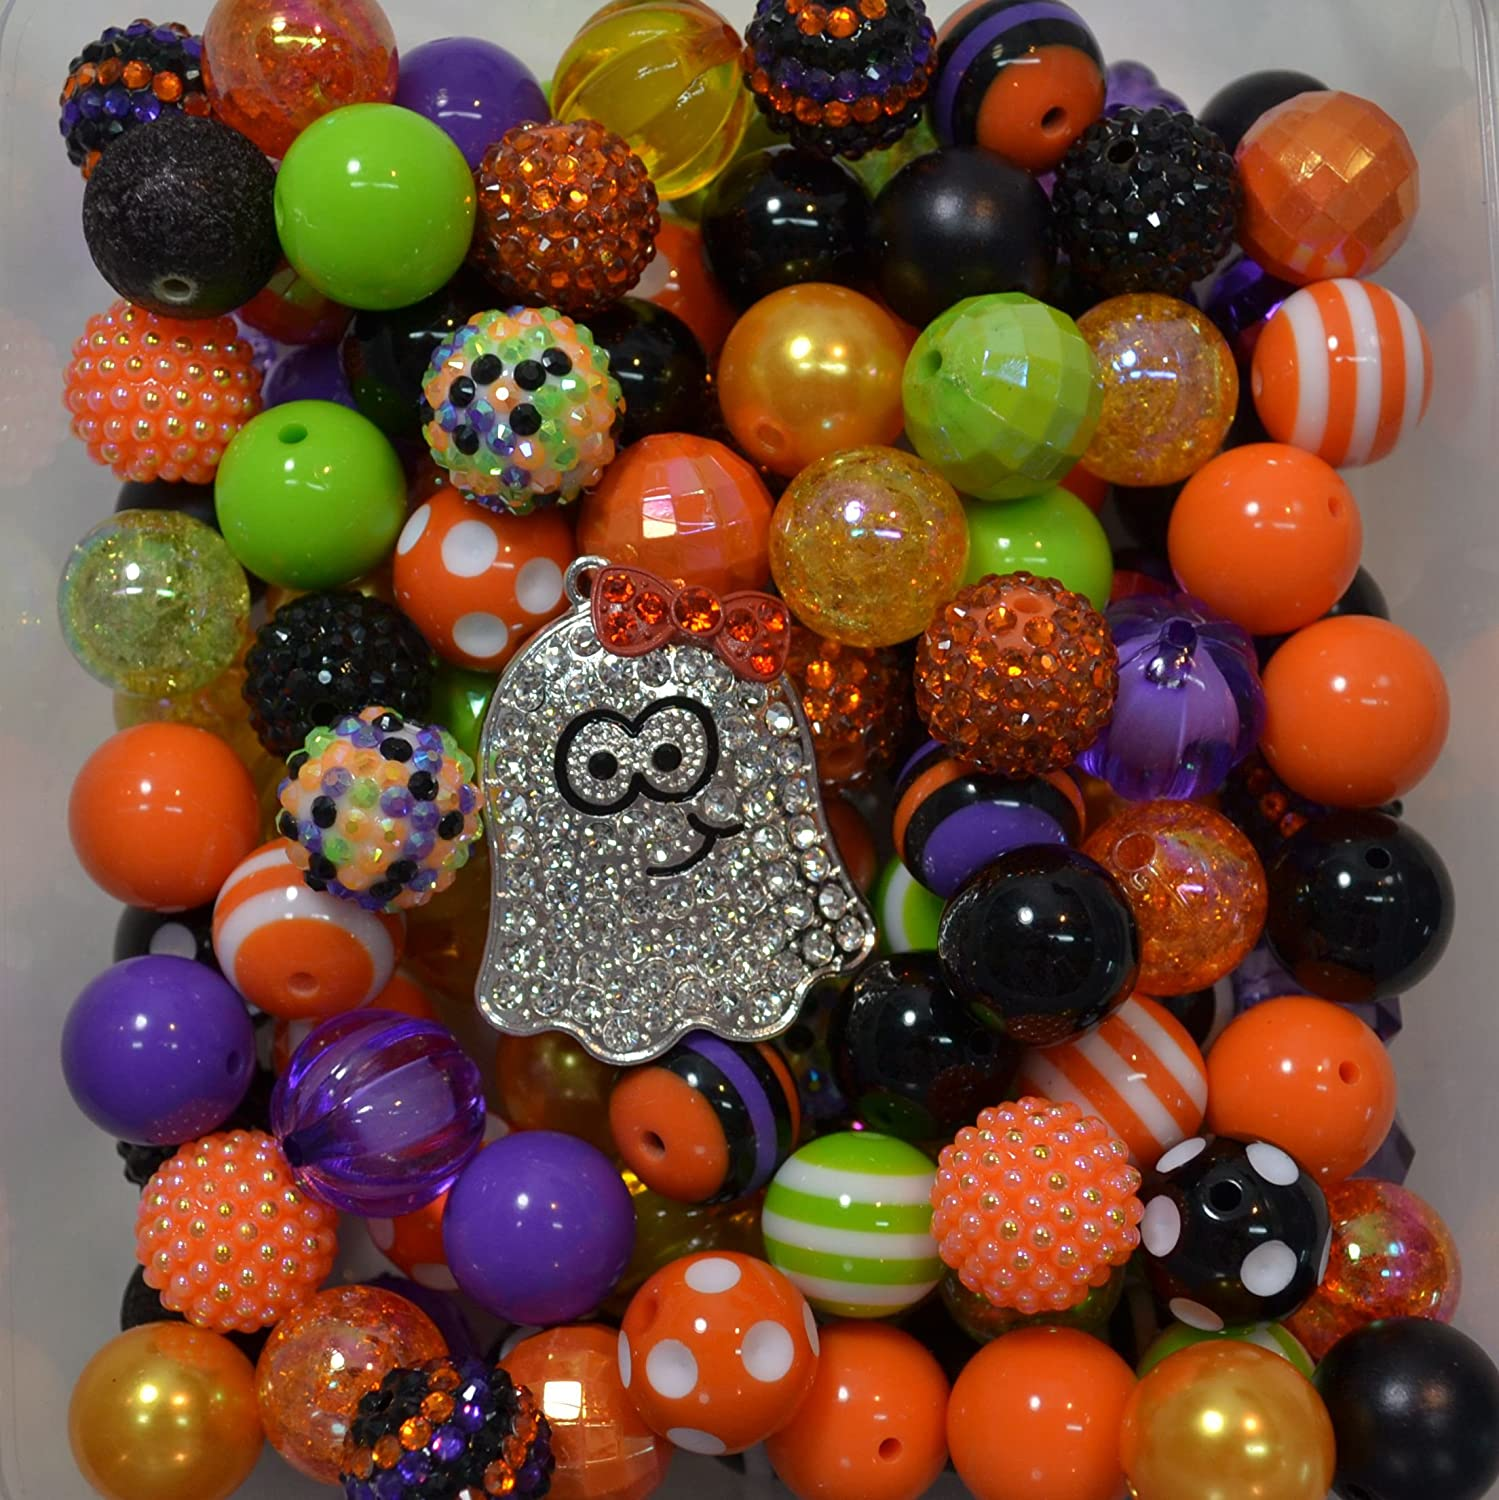 507b78aa2 Amazon.com: Halloween Themed Bulk Party Mix of 20mm Acrylic Bubblegum Beads  in Fall Colors with Ghost Pendant: Arts, Crafts & Sewing